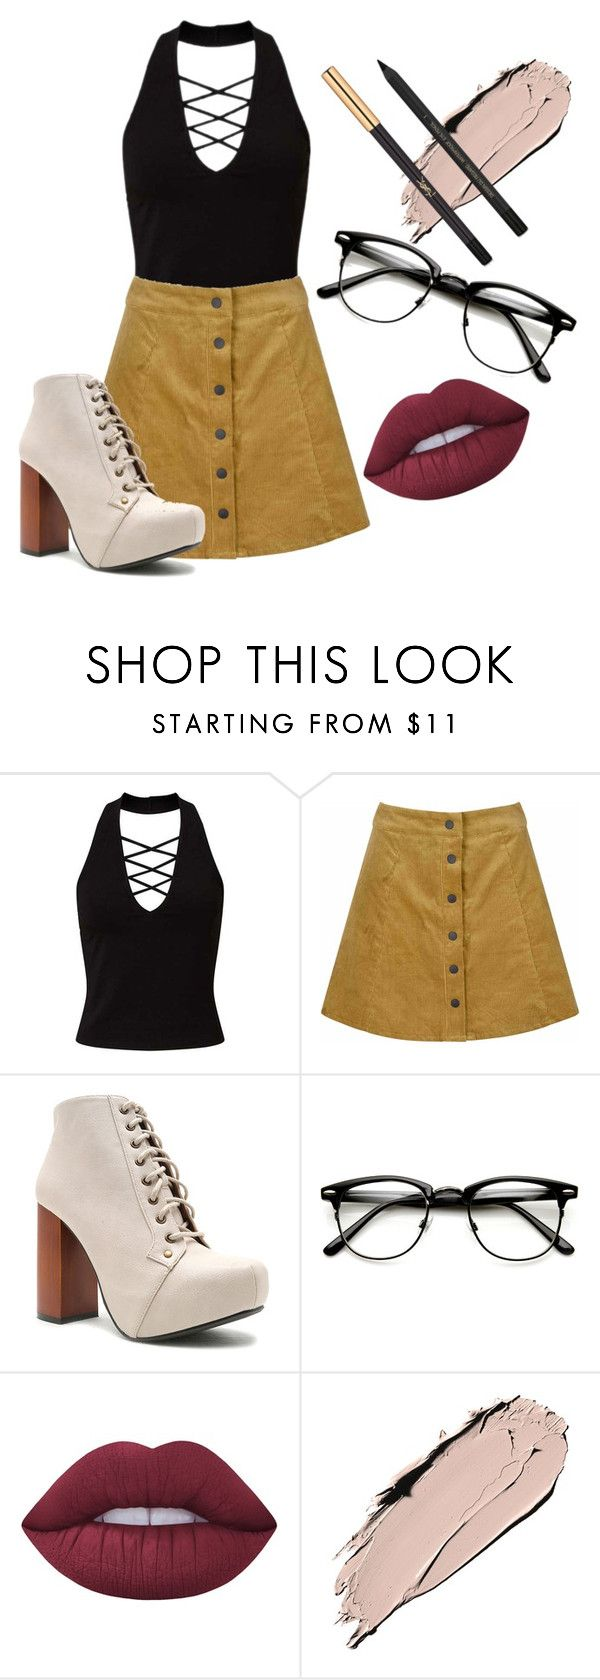 """""""Untitled #194"""" by mariemace on Polyvore featuring Miss Selfridge, Glamorous, Qupid, Lime Crime and Yves Saint Laurent"""